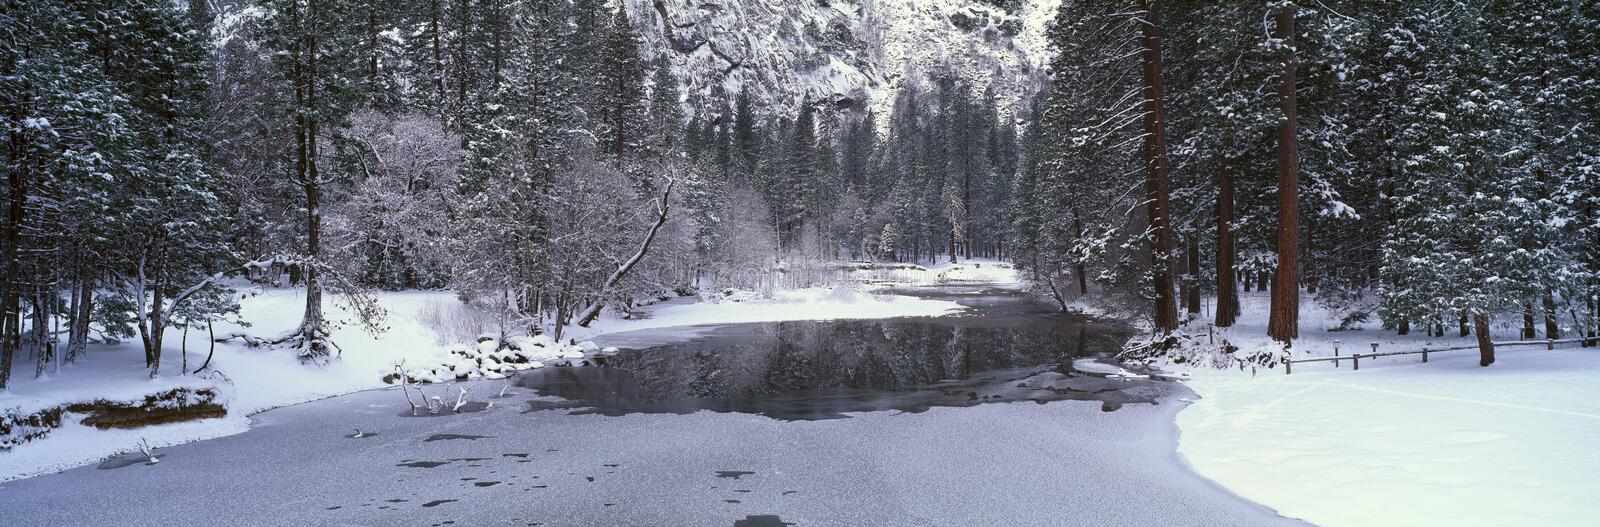 The Merced River In Winter, Yosemite National Park, California royalty free stock image